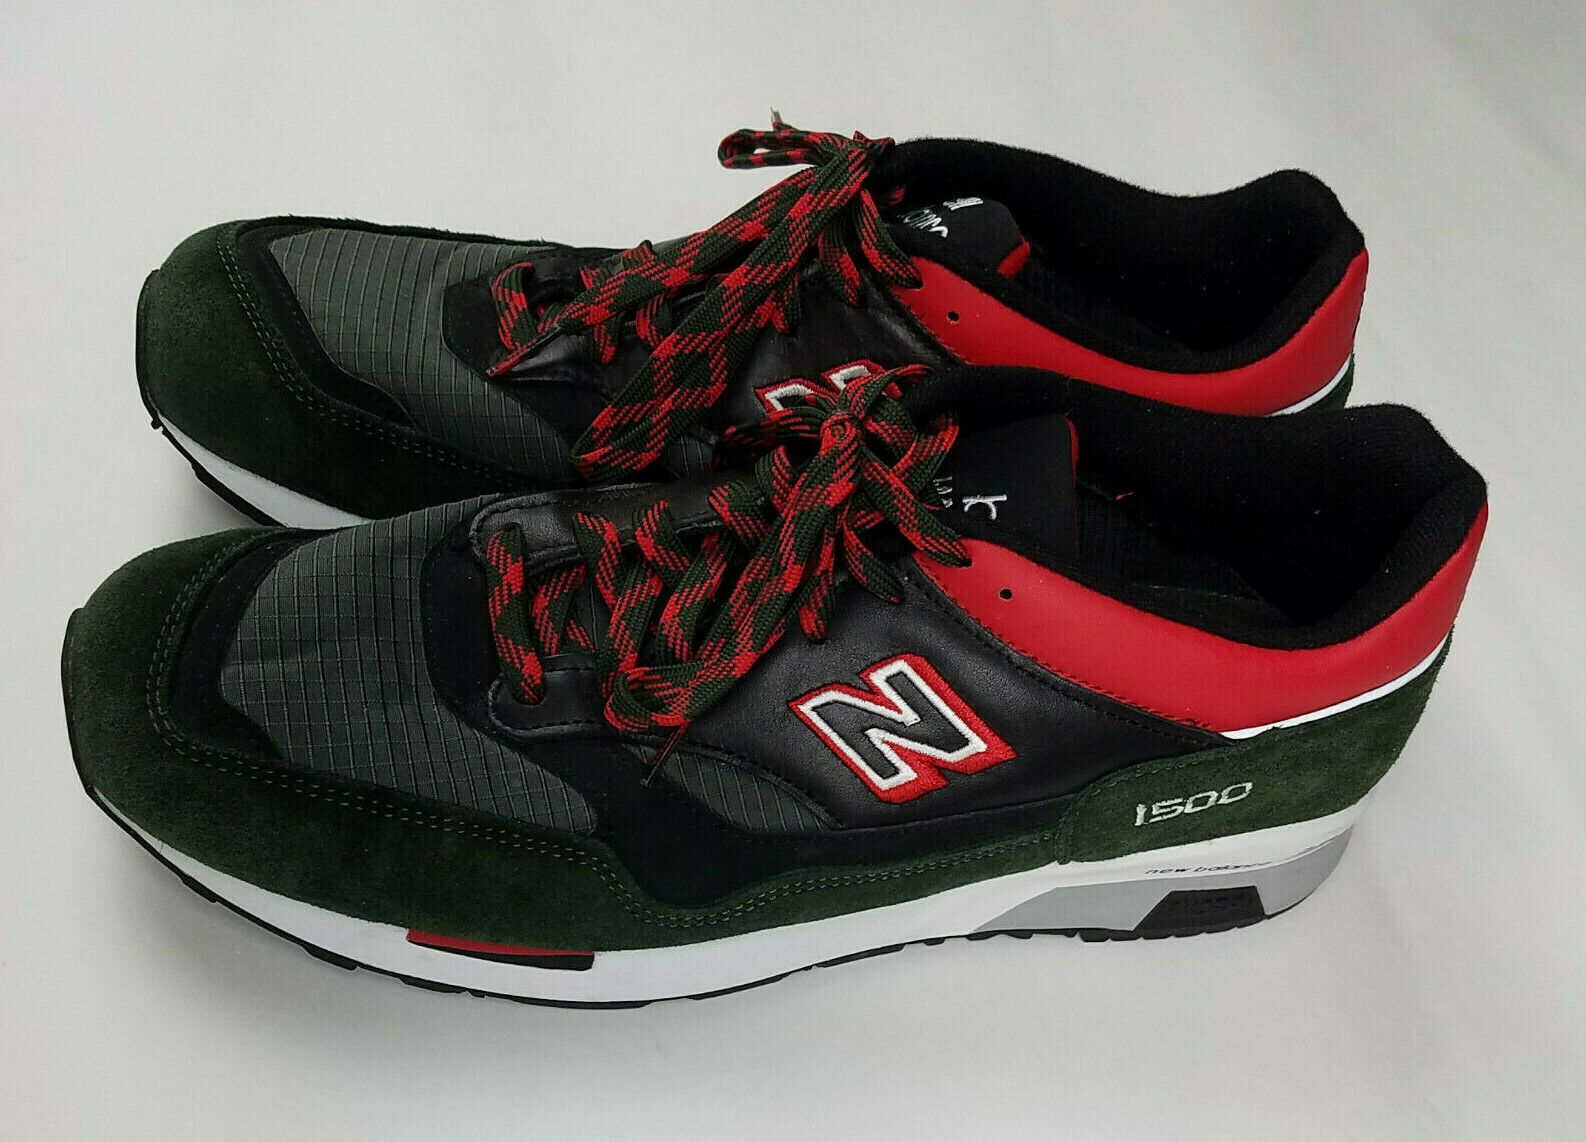 New Balance 1500 Encap Made in England Mens Black Sneakers - Size 11.5